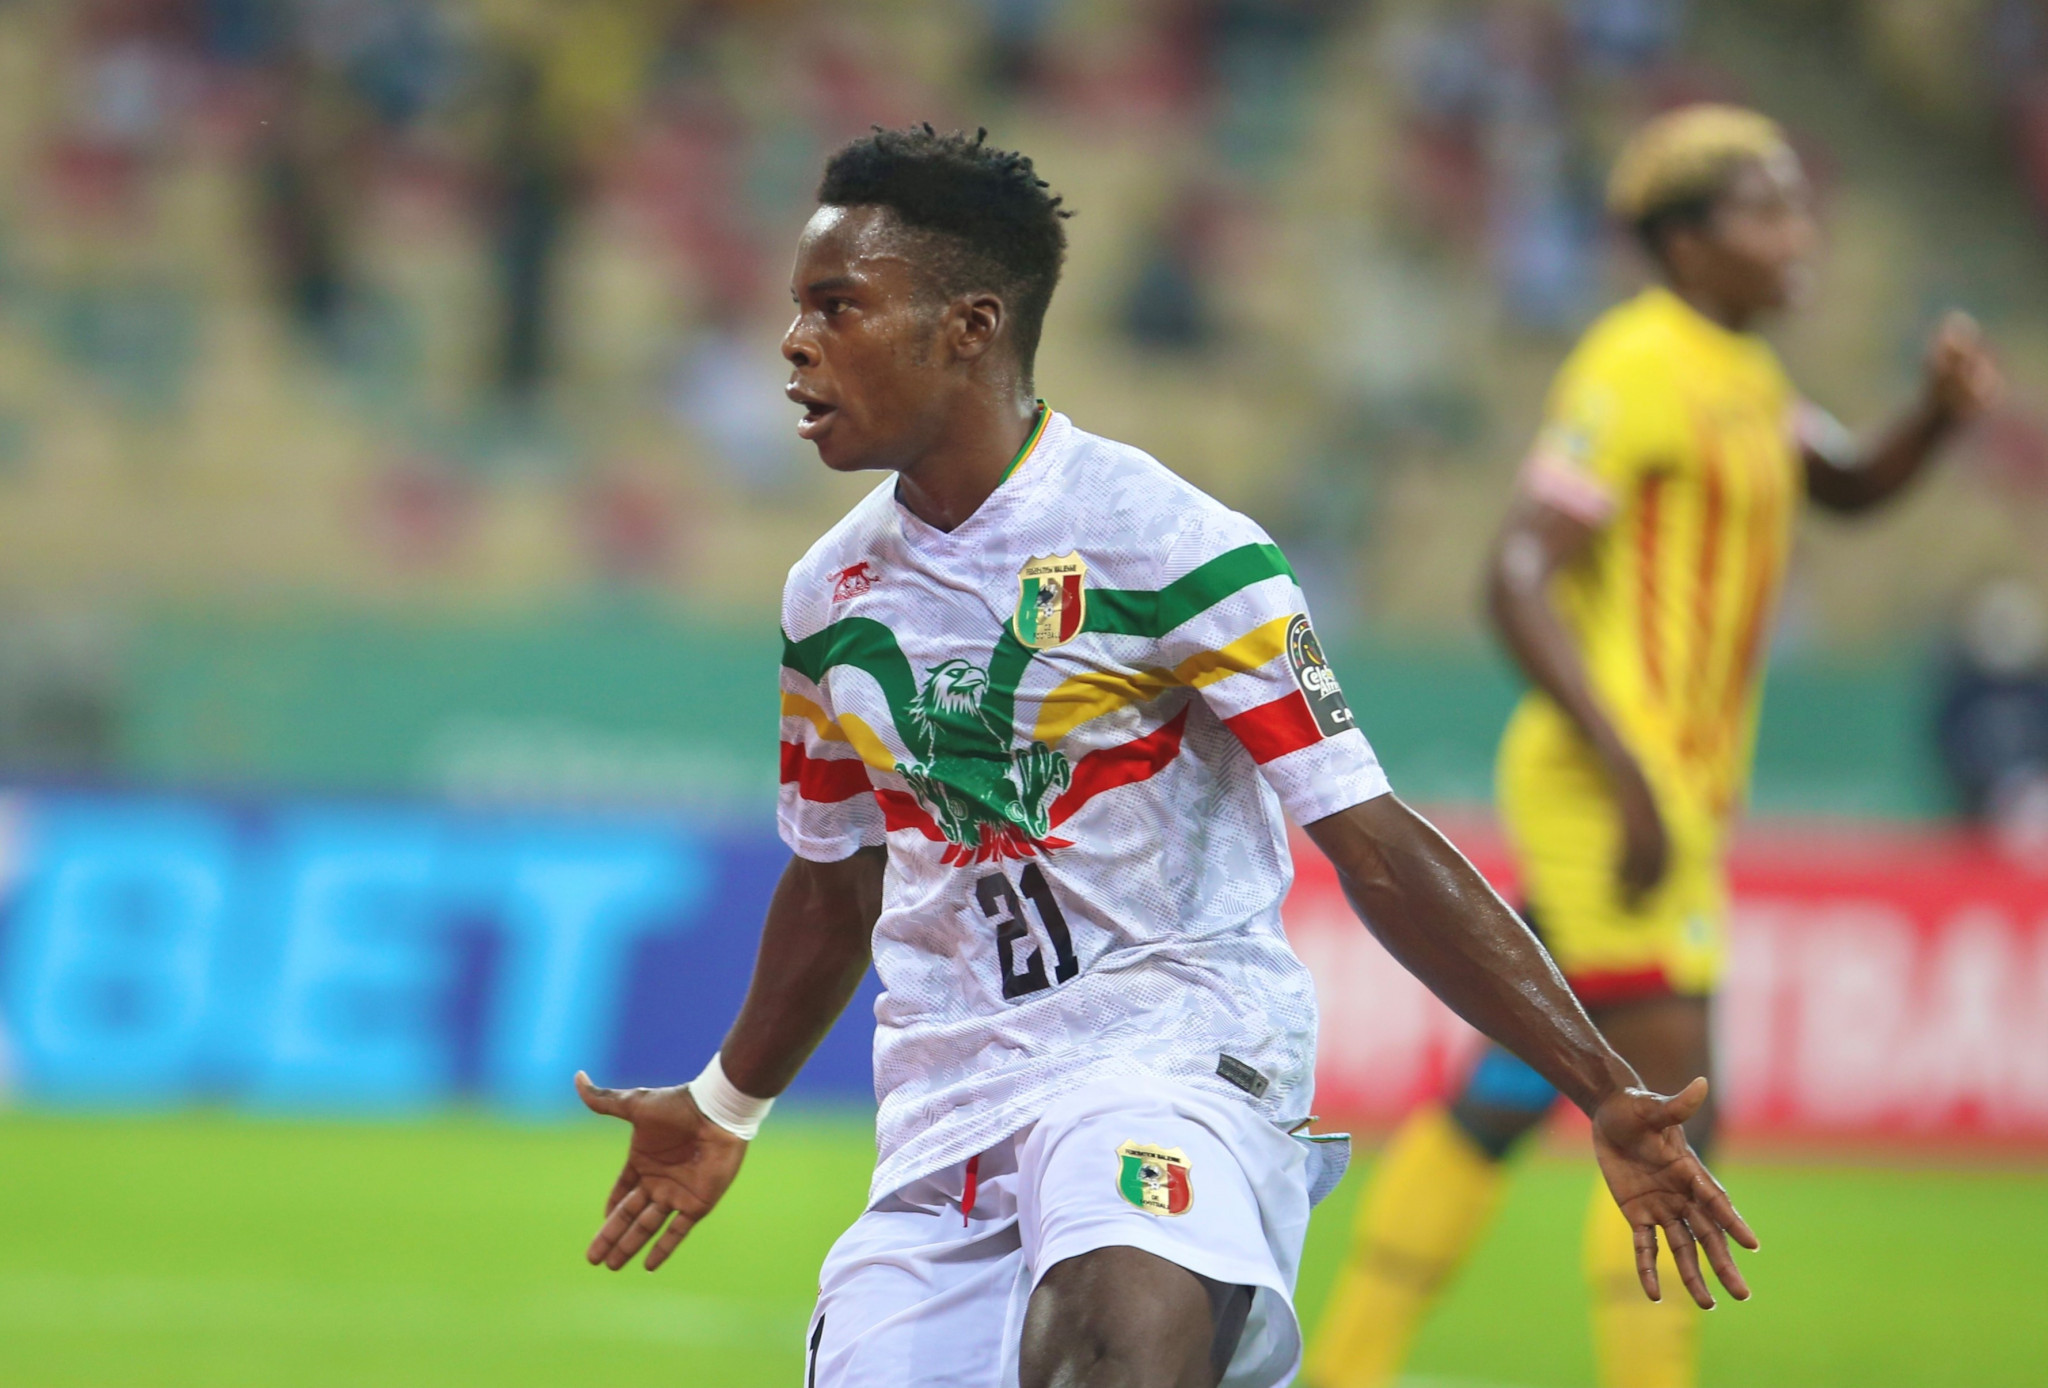 Diallo goal sees Mali win African Nations Championship Group A